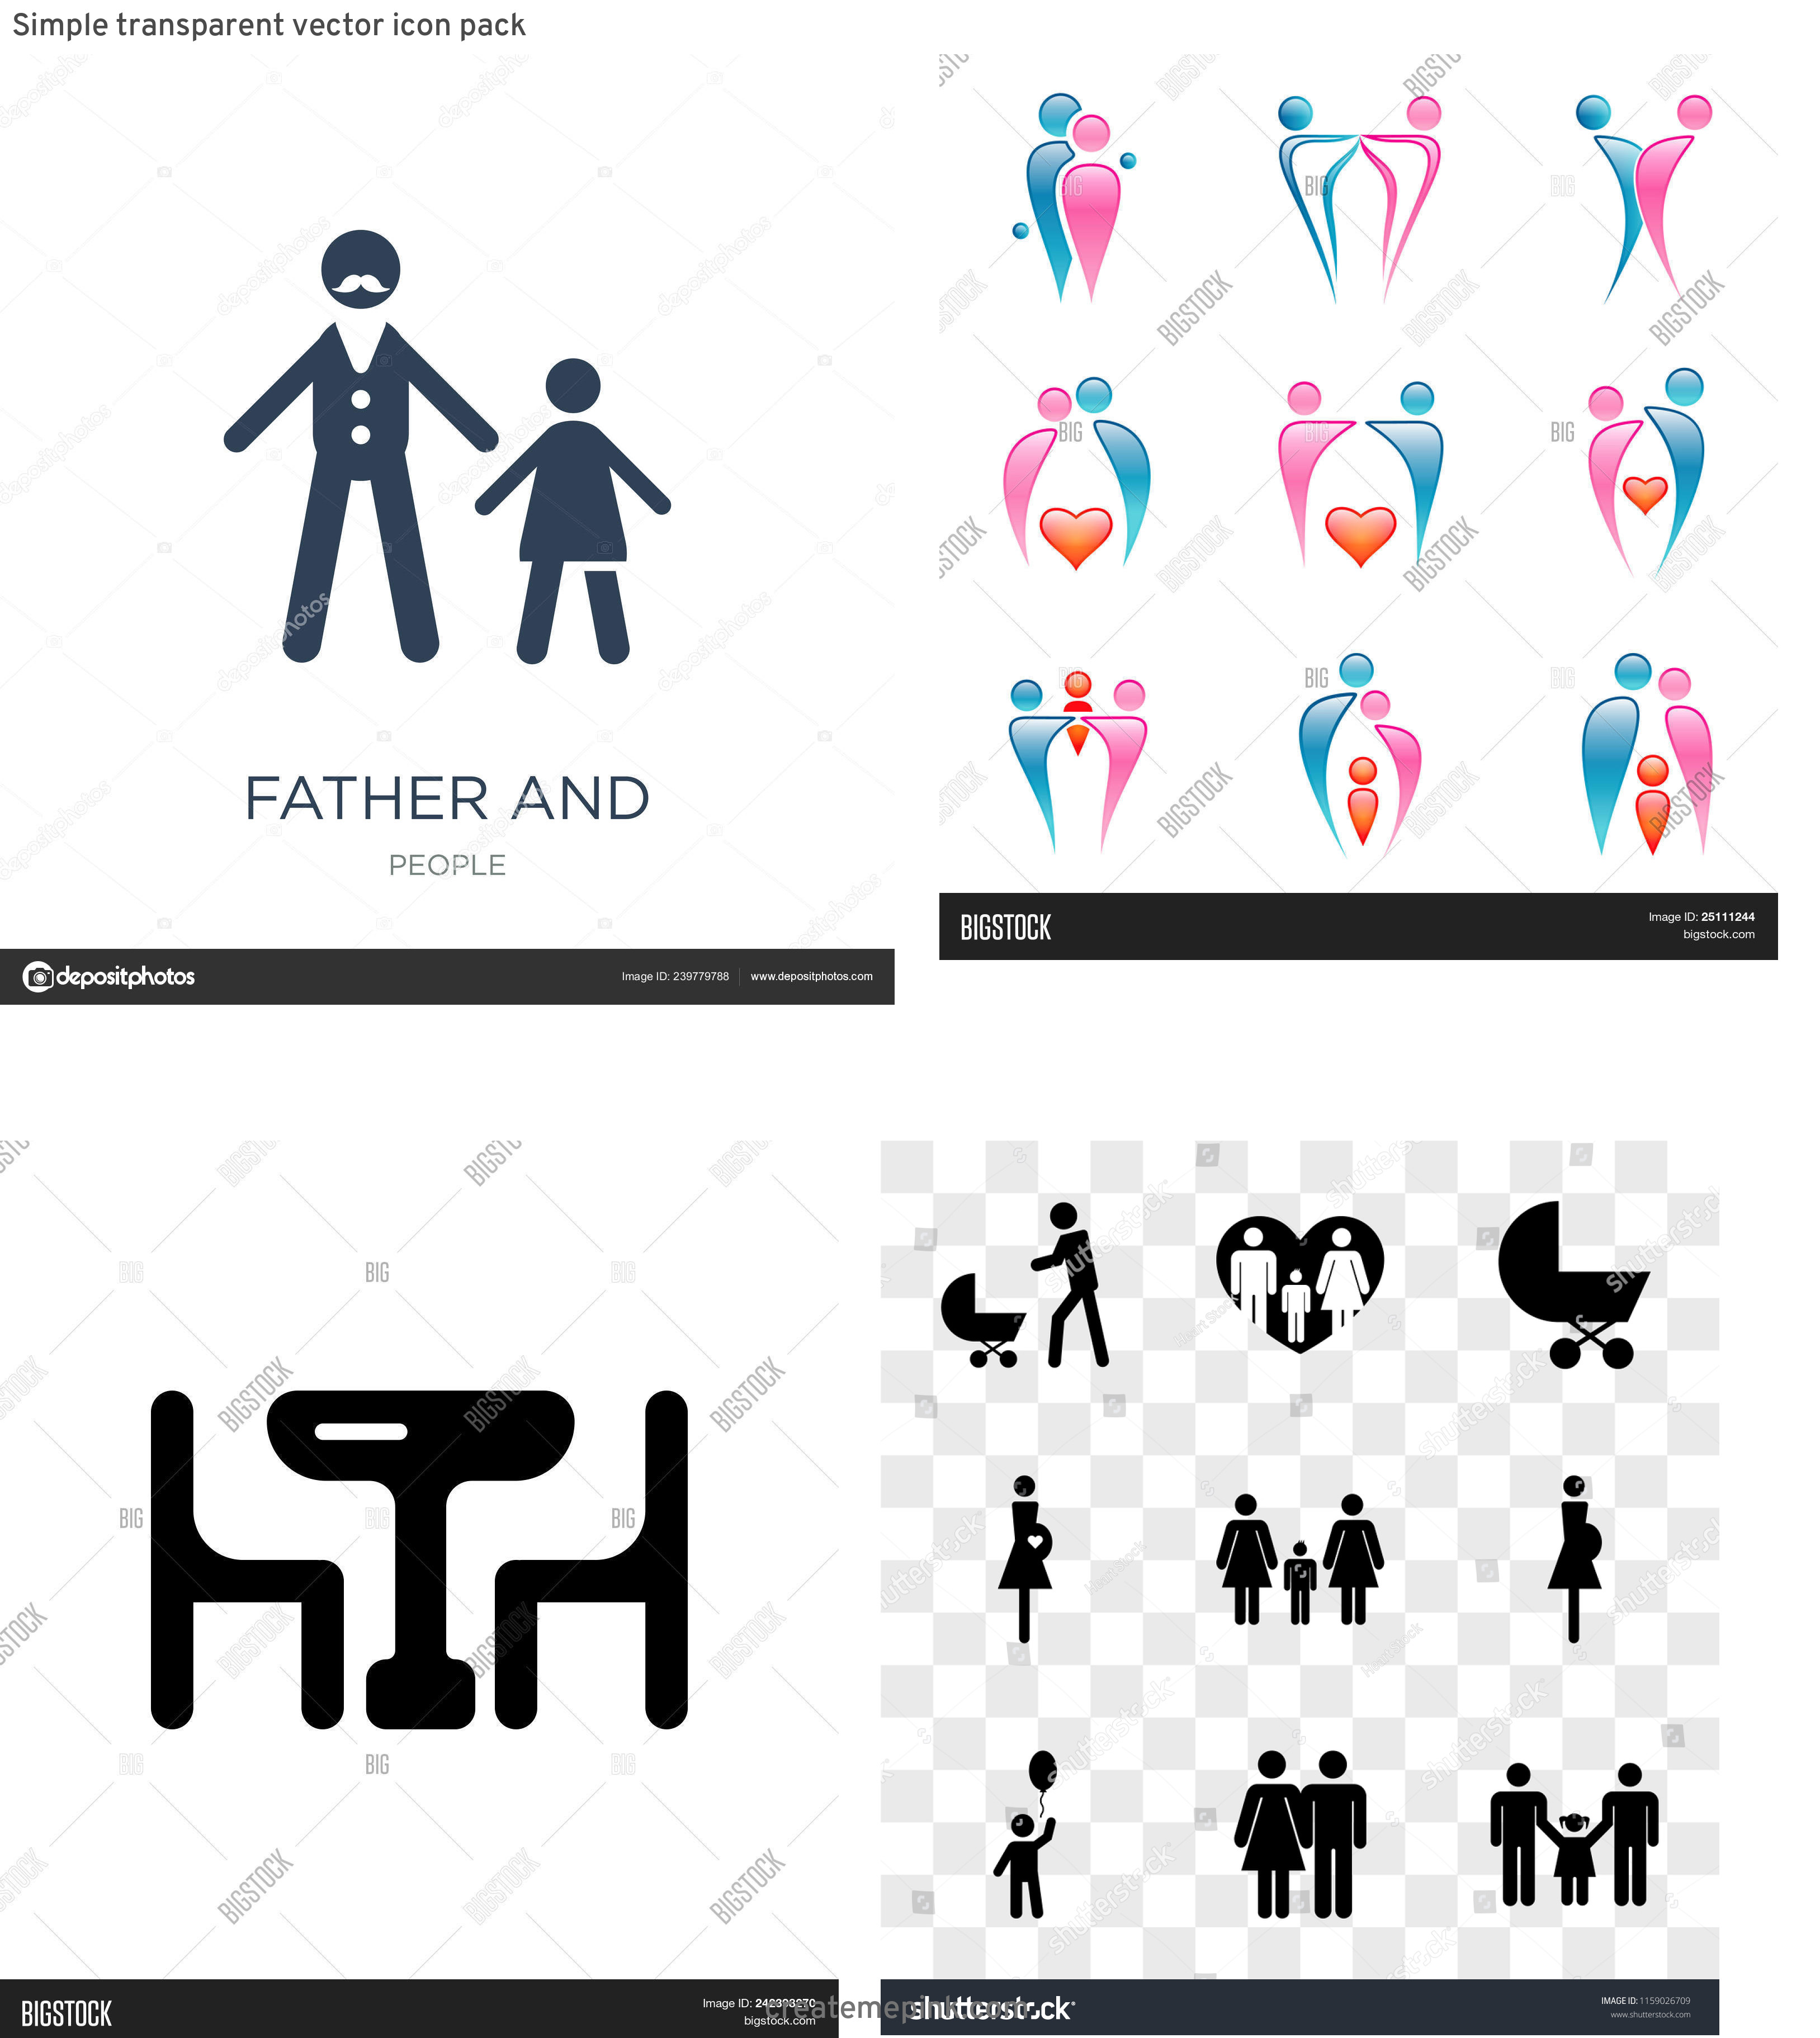 Daughter Vector Icons: Simple Transparent Vector Icon Pack